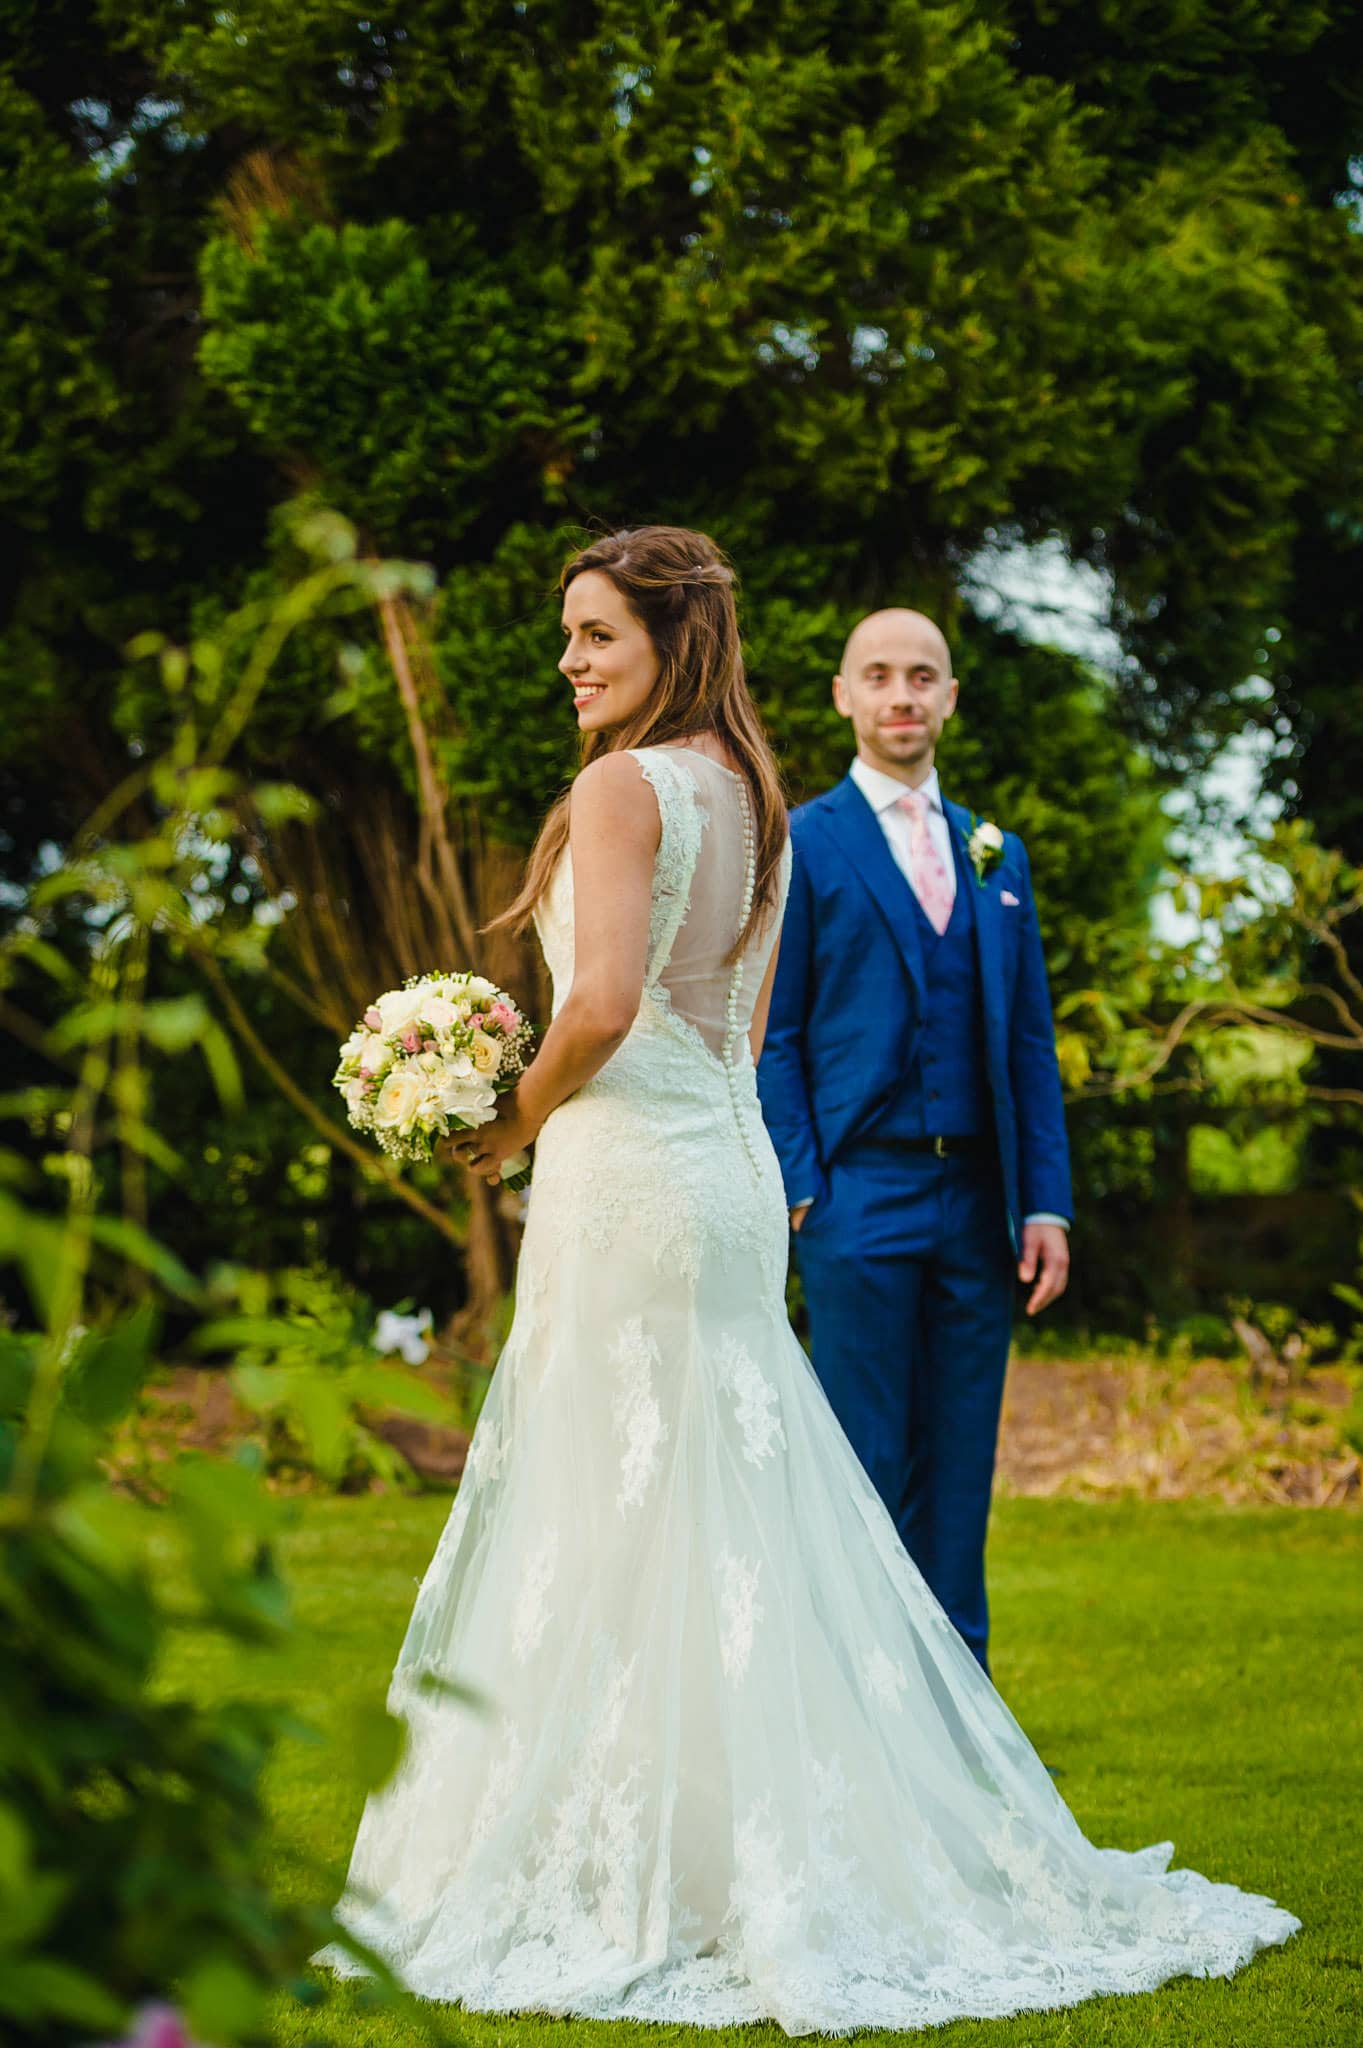 Wedding at Redhouse Barn in Stoke Prior, Worcestershire 186